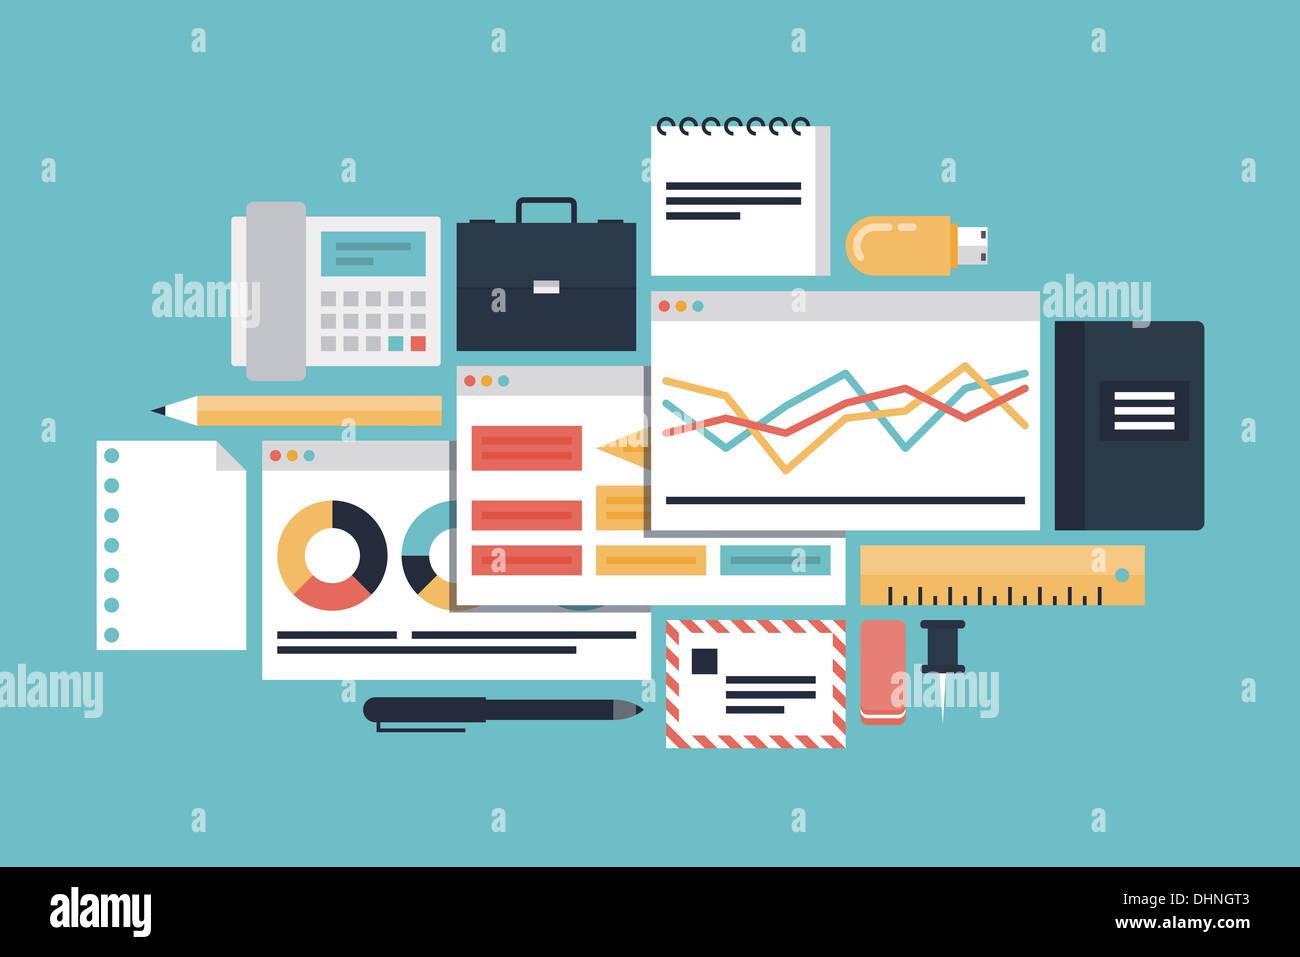 Modern stylish illustration of business productivity development and market process with diagram and charts - Stock Image